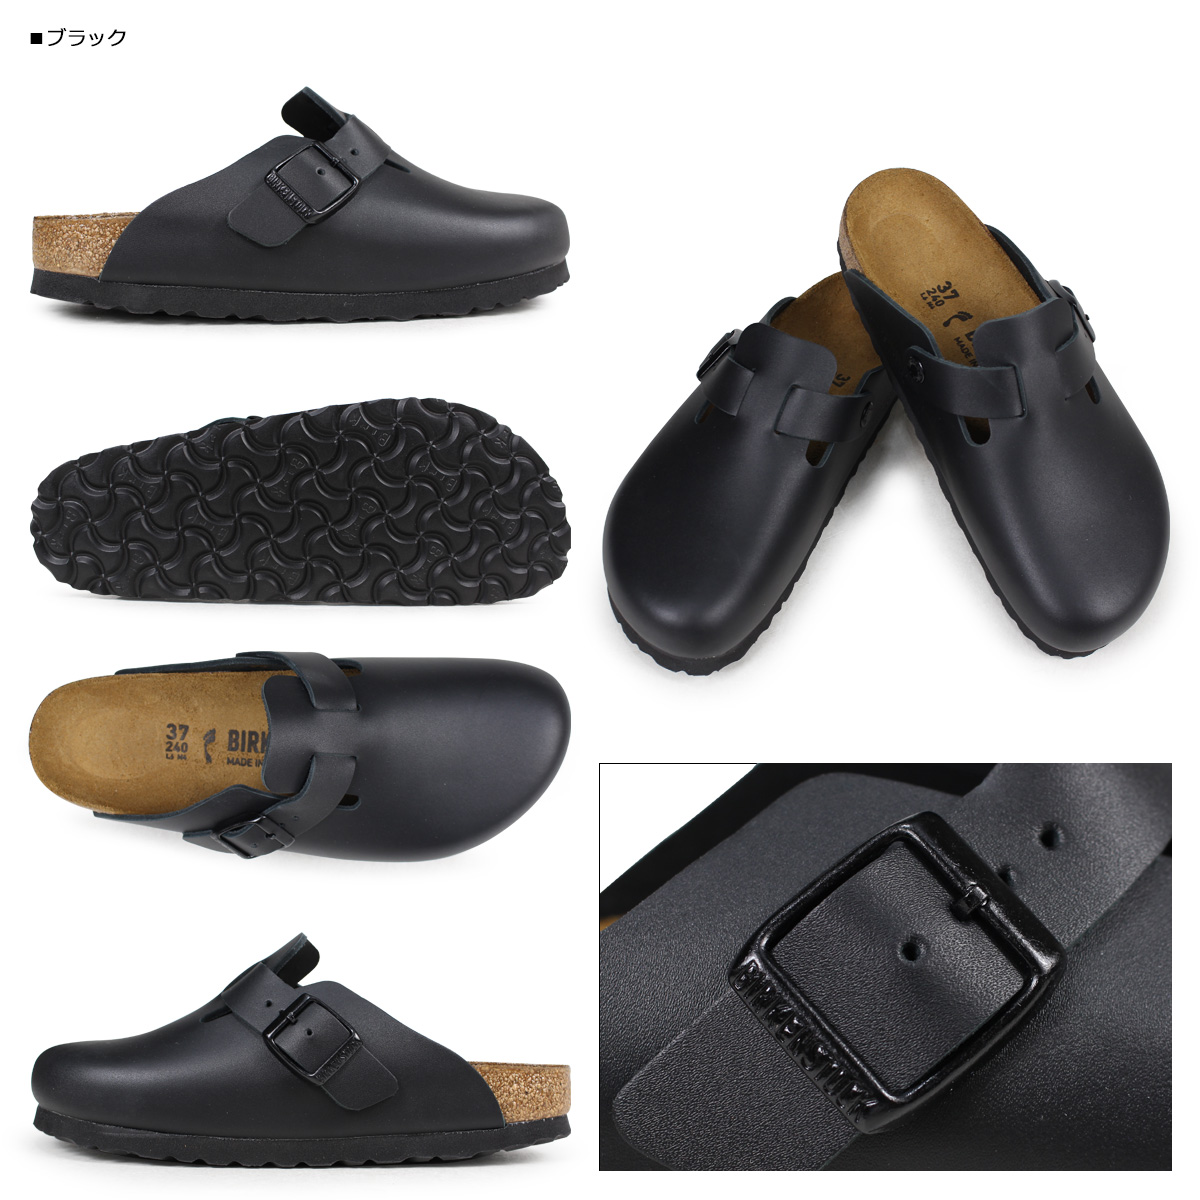 «Pre-order items» «5 / 22 time stock» Birkenstock BIRKENSTOCK vilken ladies Boston Sandals BOSTON shred width leather clog Sandals 2015 spring summer new 4 color [5 / 22 new stock] [regular] ★ ★